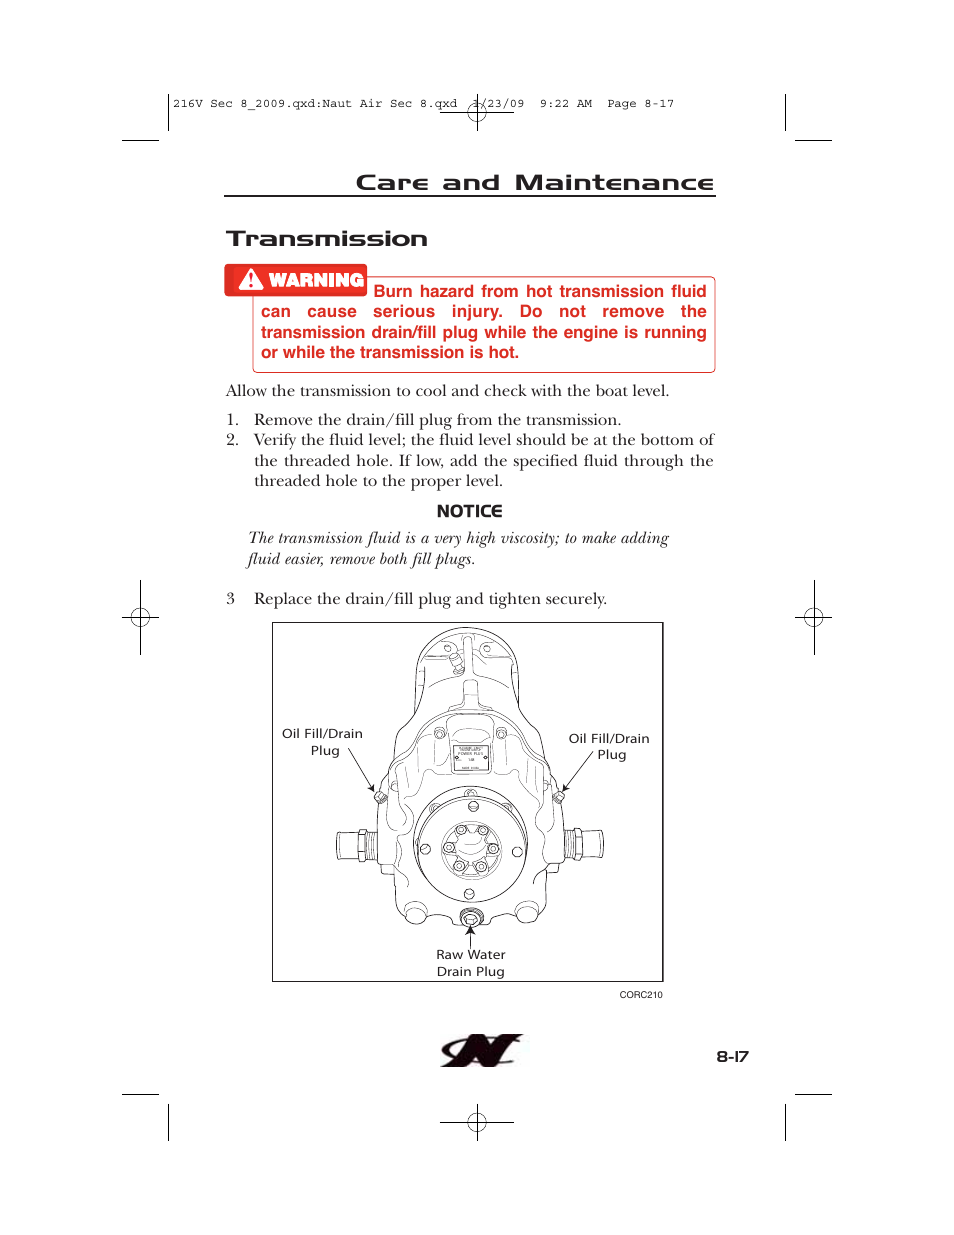 Transmission, Care and maintenance   Nautique Crossover